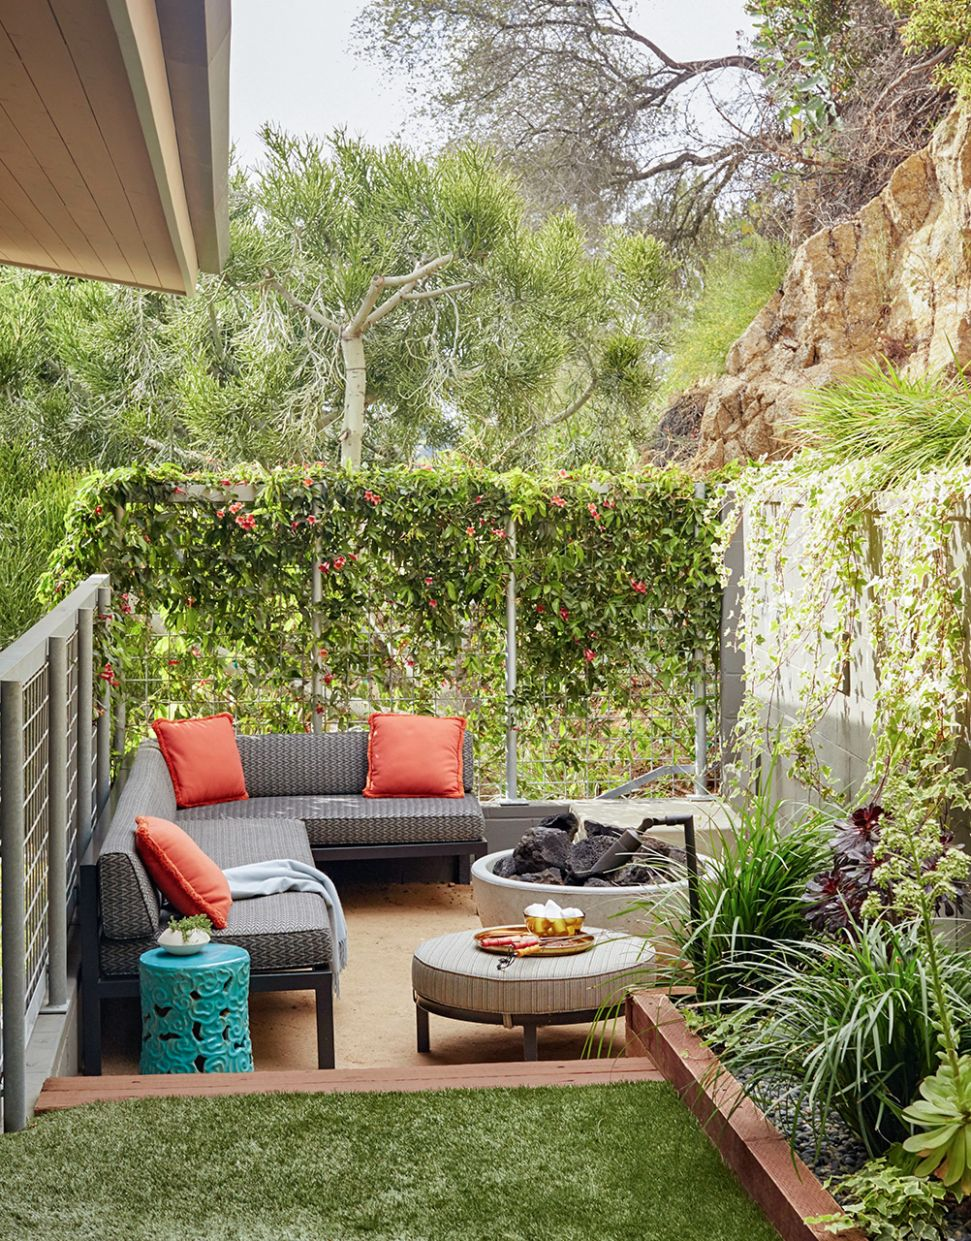 8 Budget-Friendly Backyard Ideas to Create the Ultimate Outdoor ...